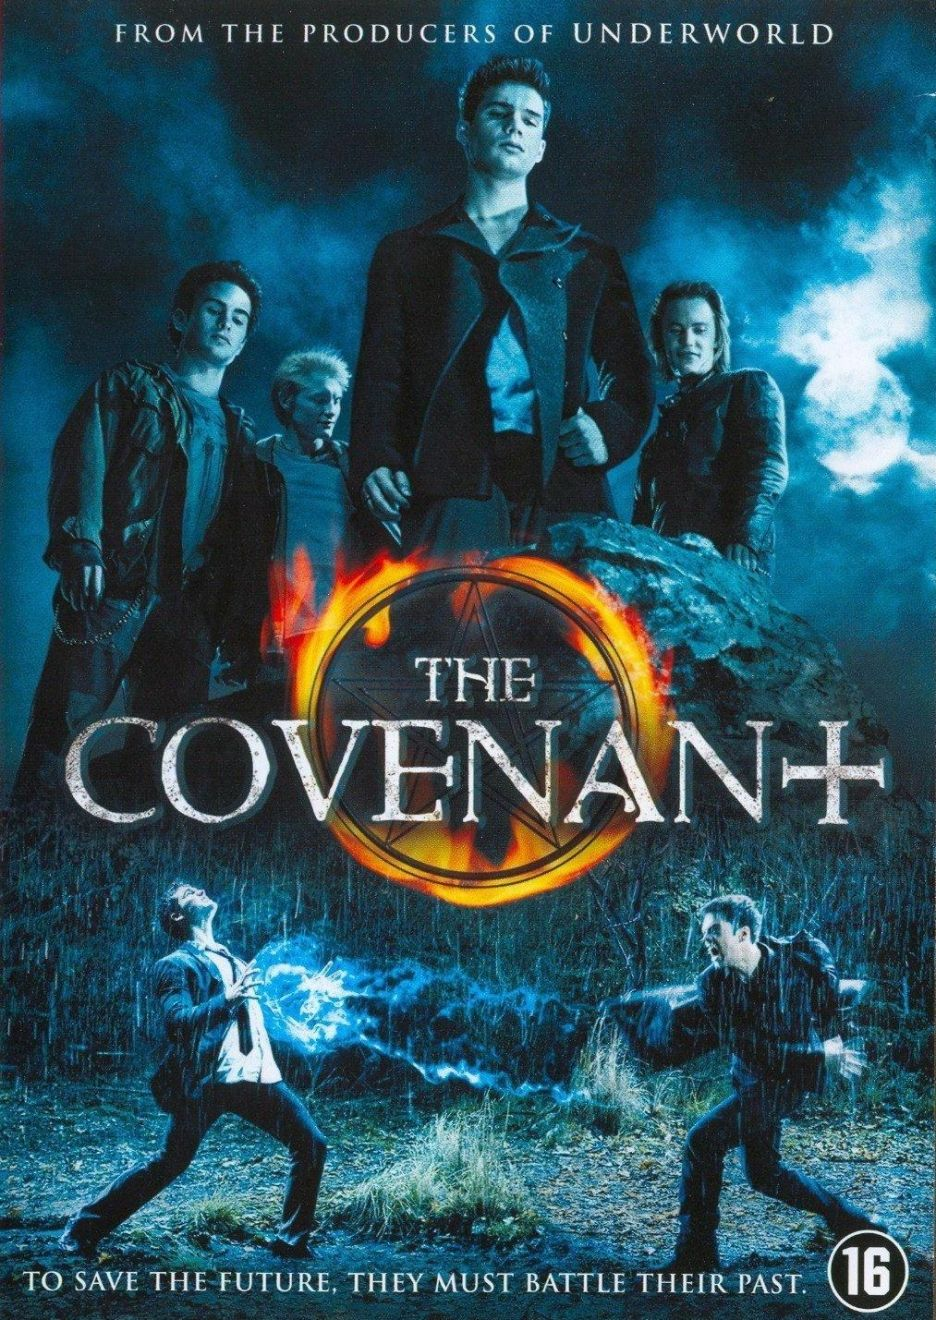 The Covenant 2006 Covenant Movie The Covenant Free Movies Online